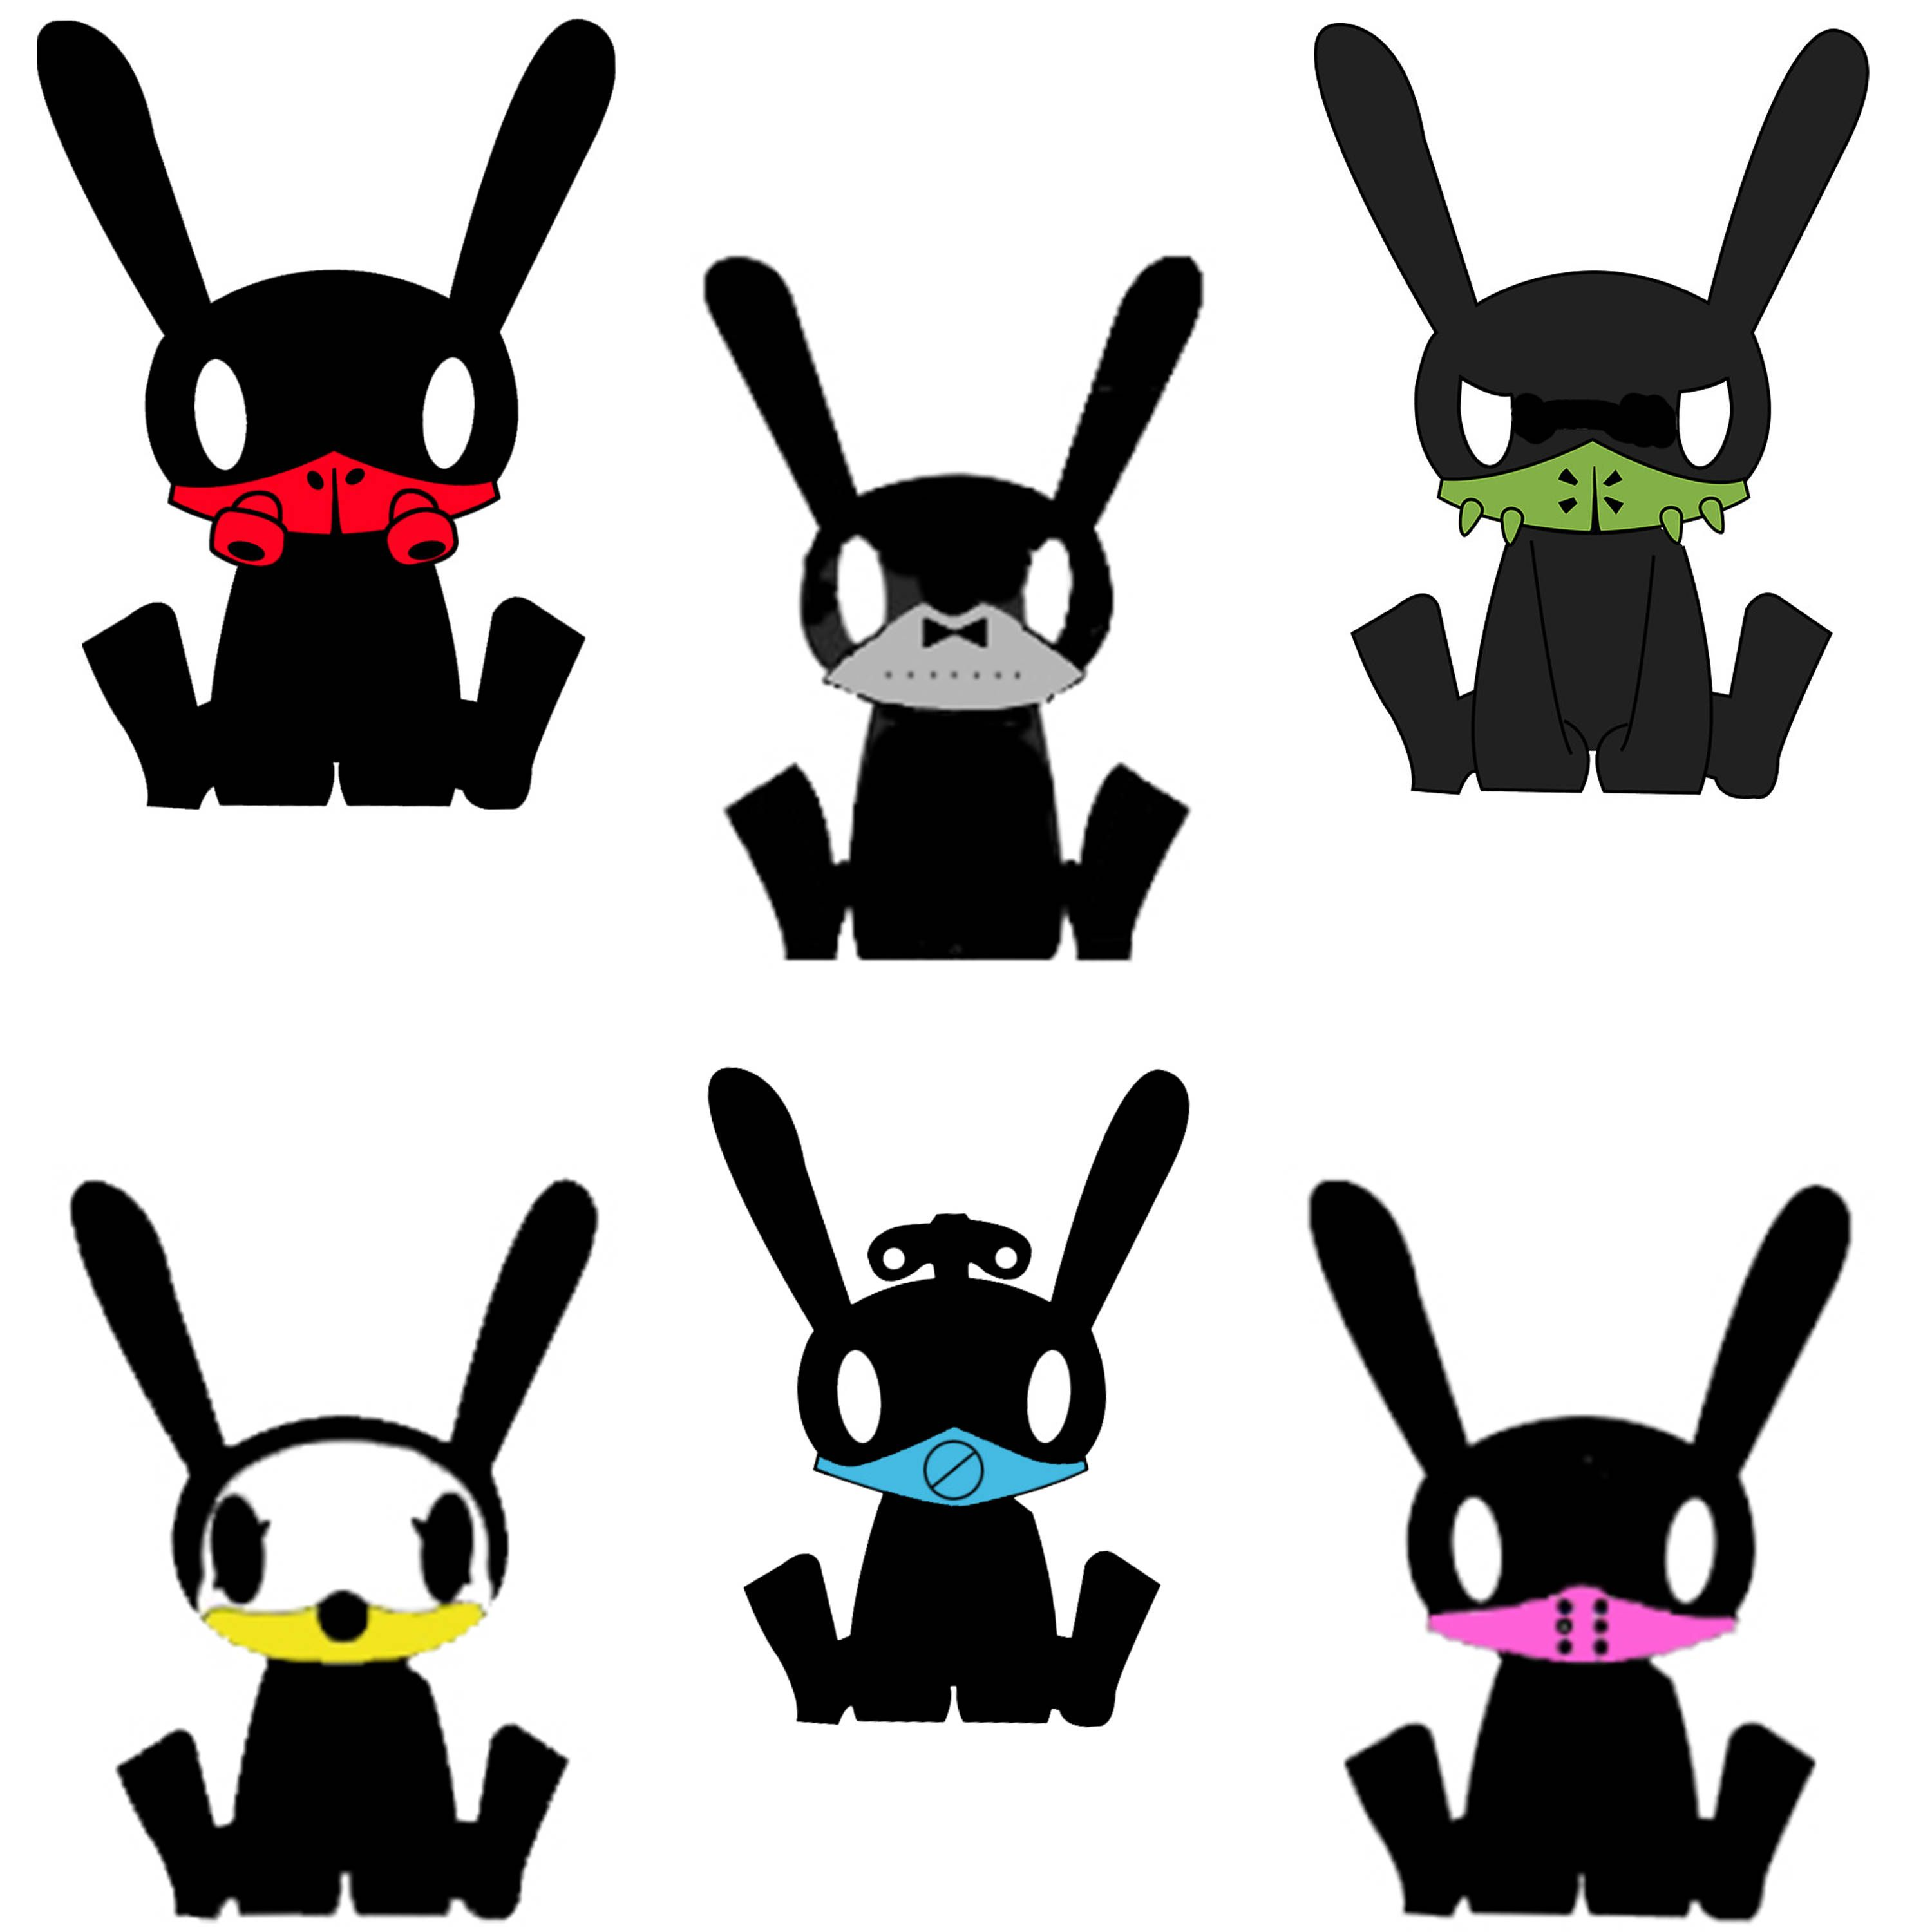 B.A.P Member Matoki Decal Kpop by HarusArt on Etsy  05d432afc795a